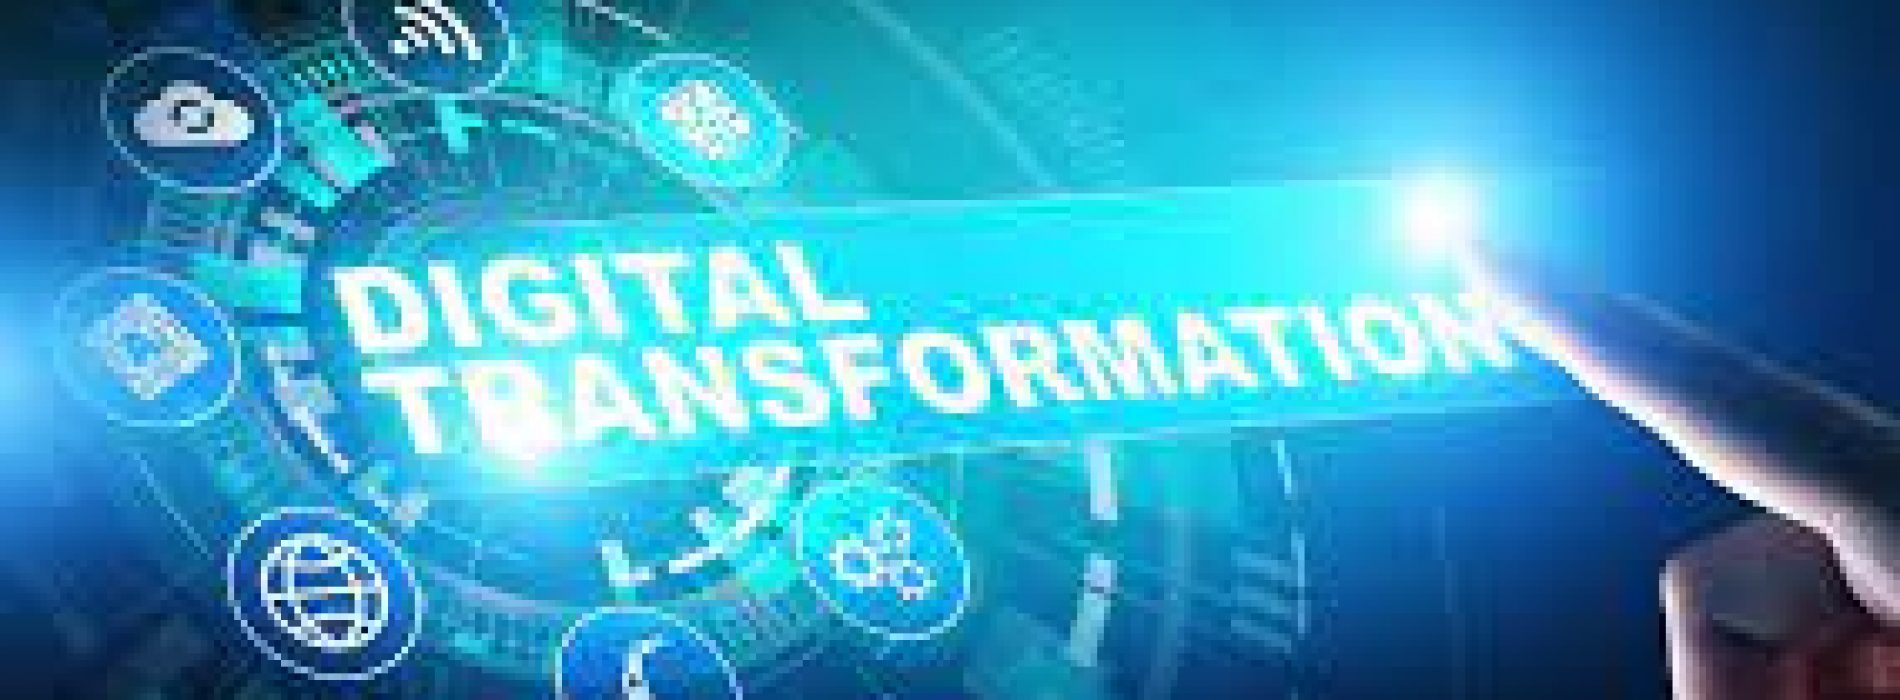 Why Hire a Consultant for Your Digital Transformation?